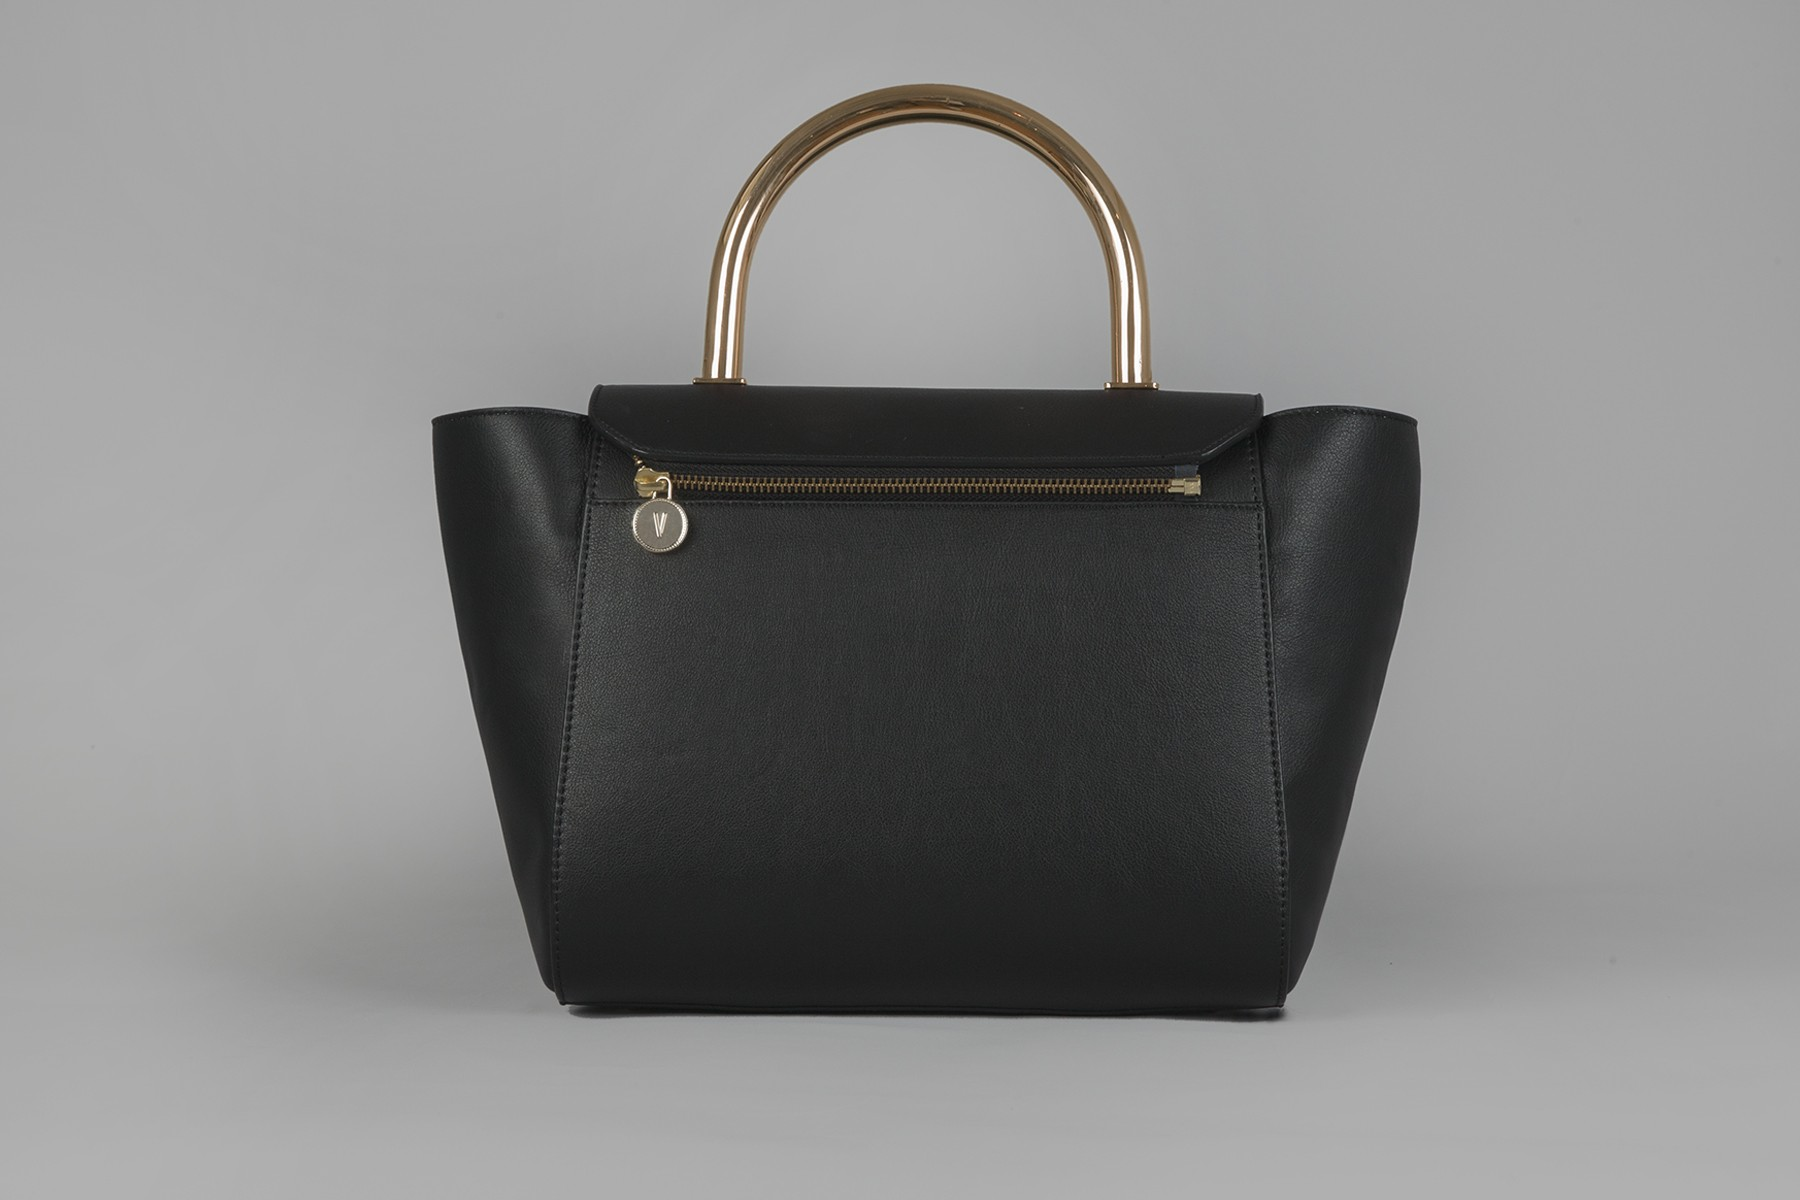 Paris - Full bag - black